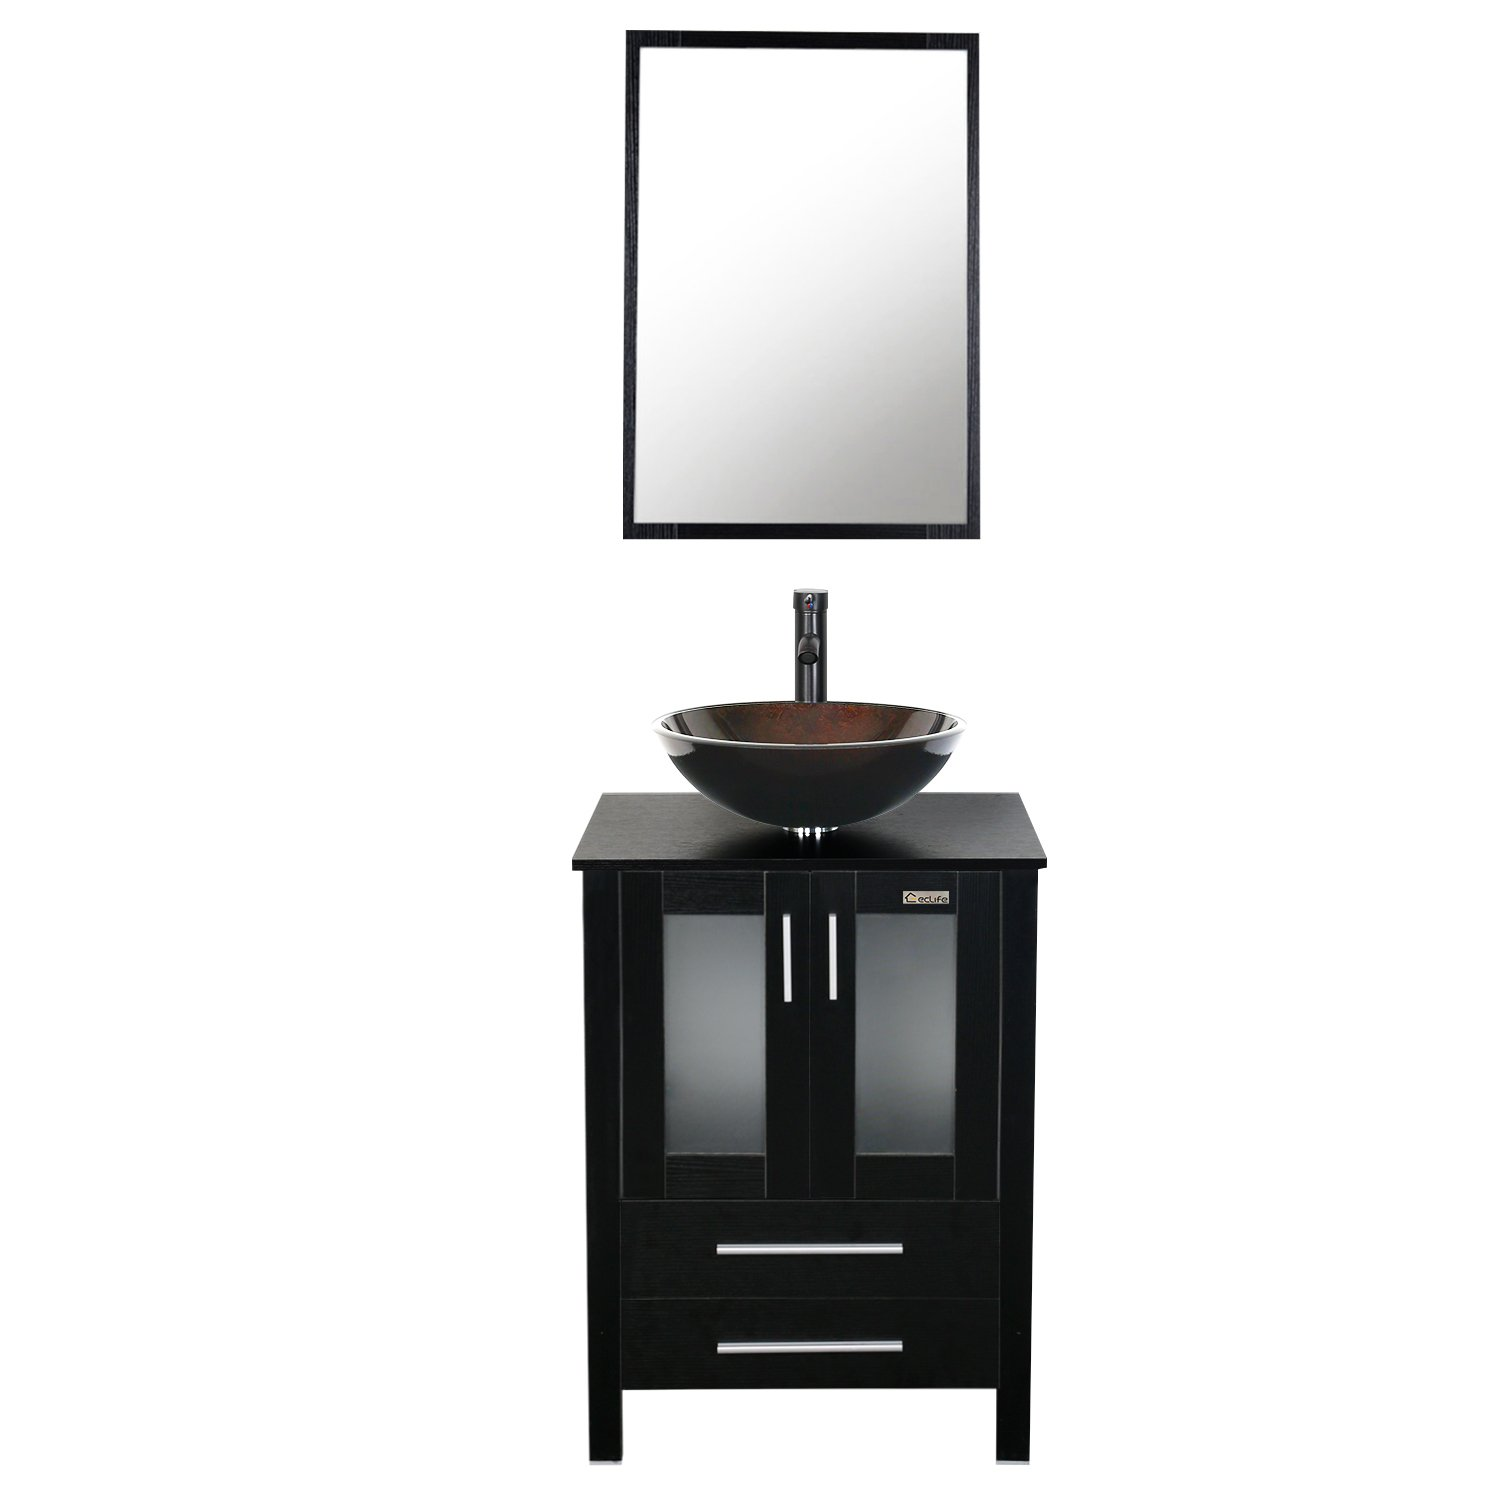 vanities cabinet furniture units charcoal grey cabinets mounted vanity bauhaus basin svelte uk bathroom wall sink unit glass